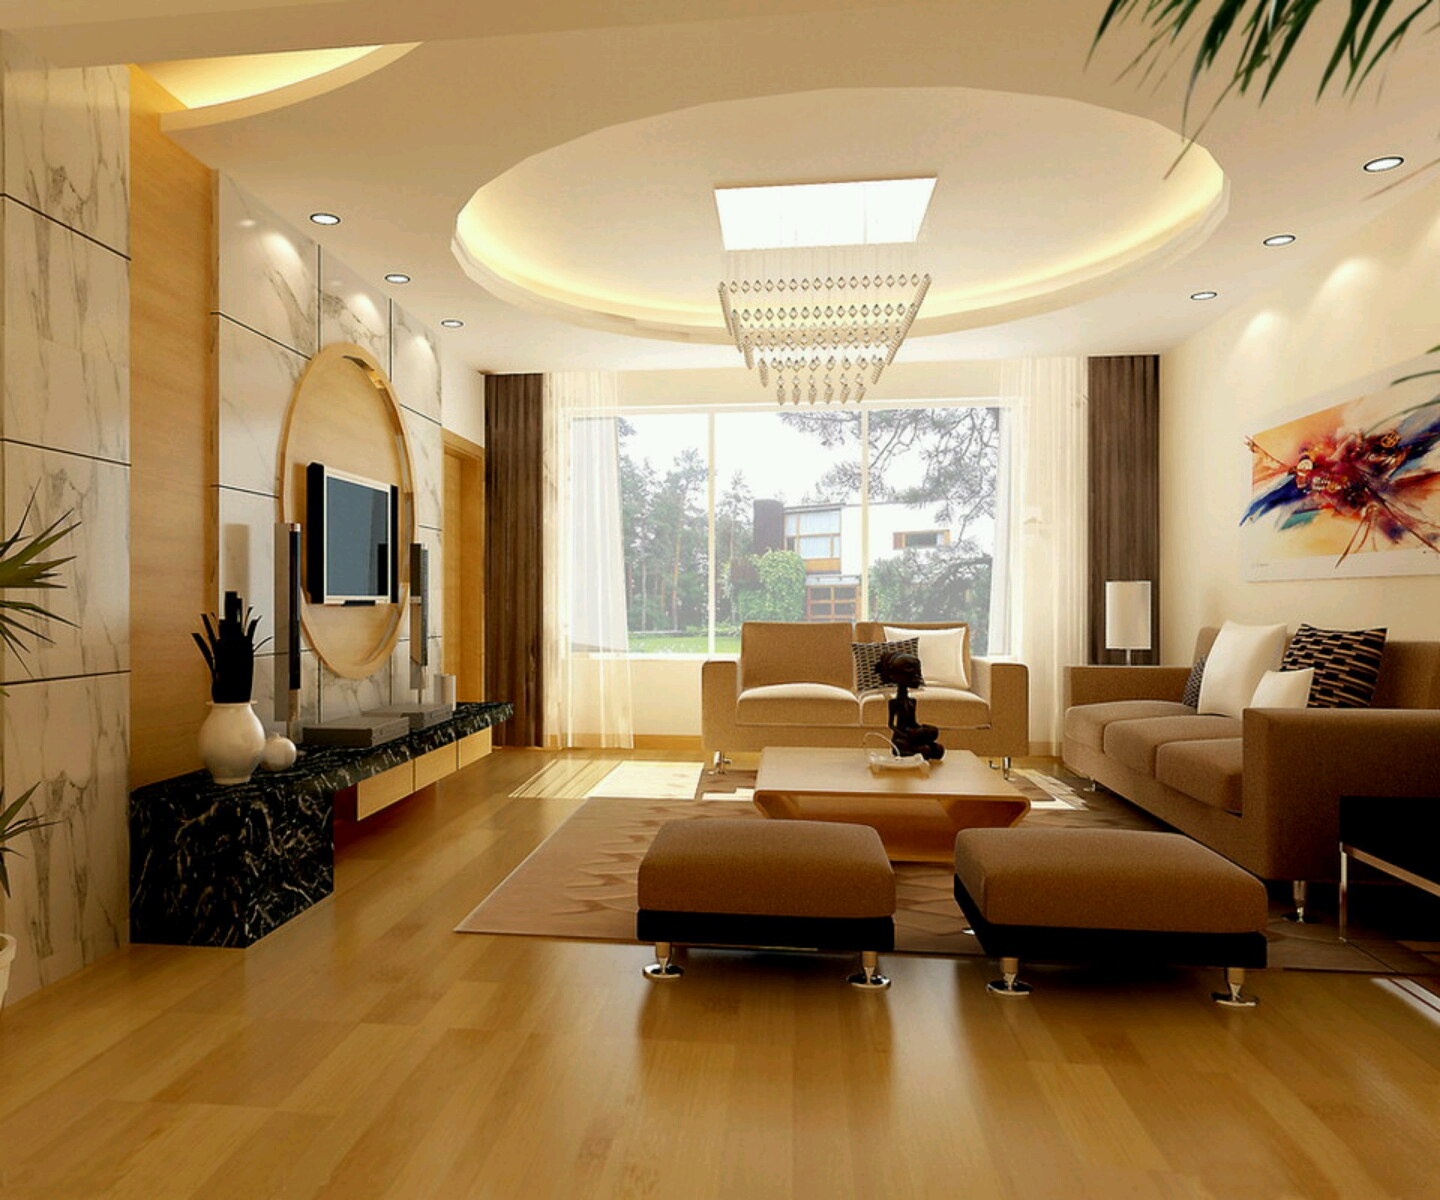 Modern interior decoration living rooms ceiling designs - Simple ceiling design for living room ...